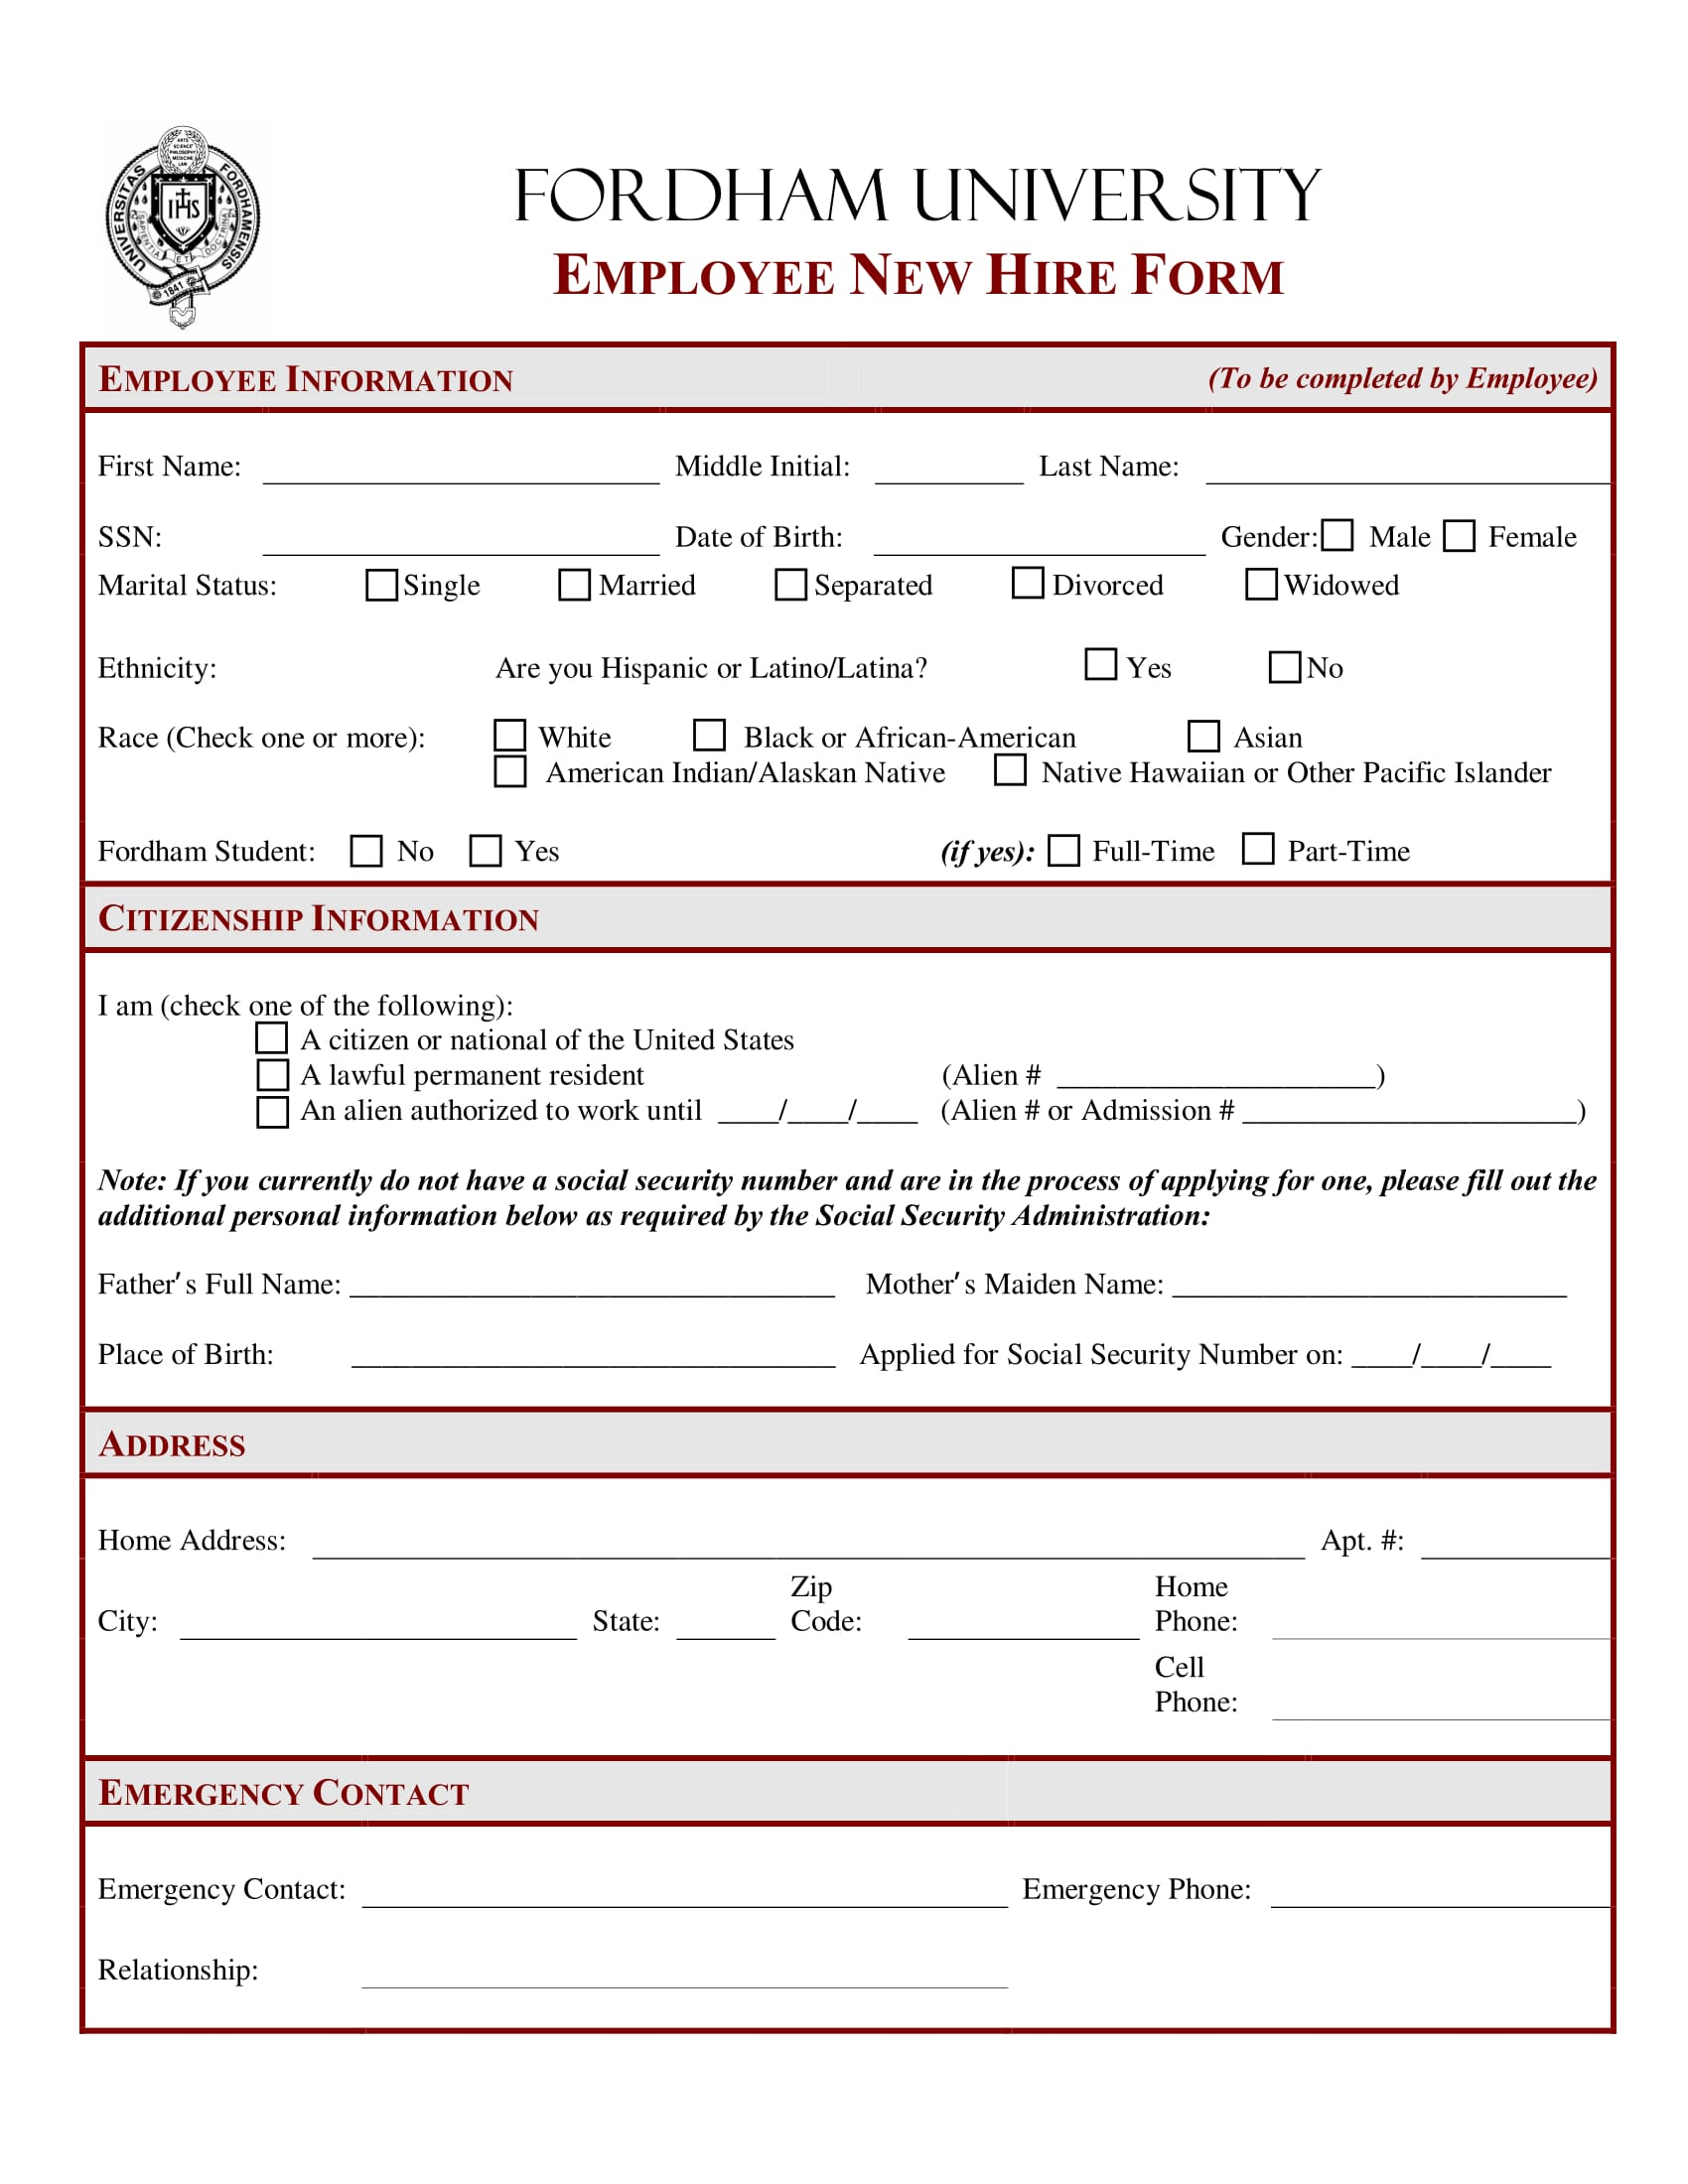 employee new hire form 1